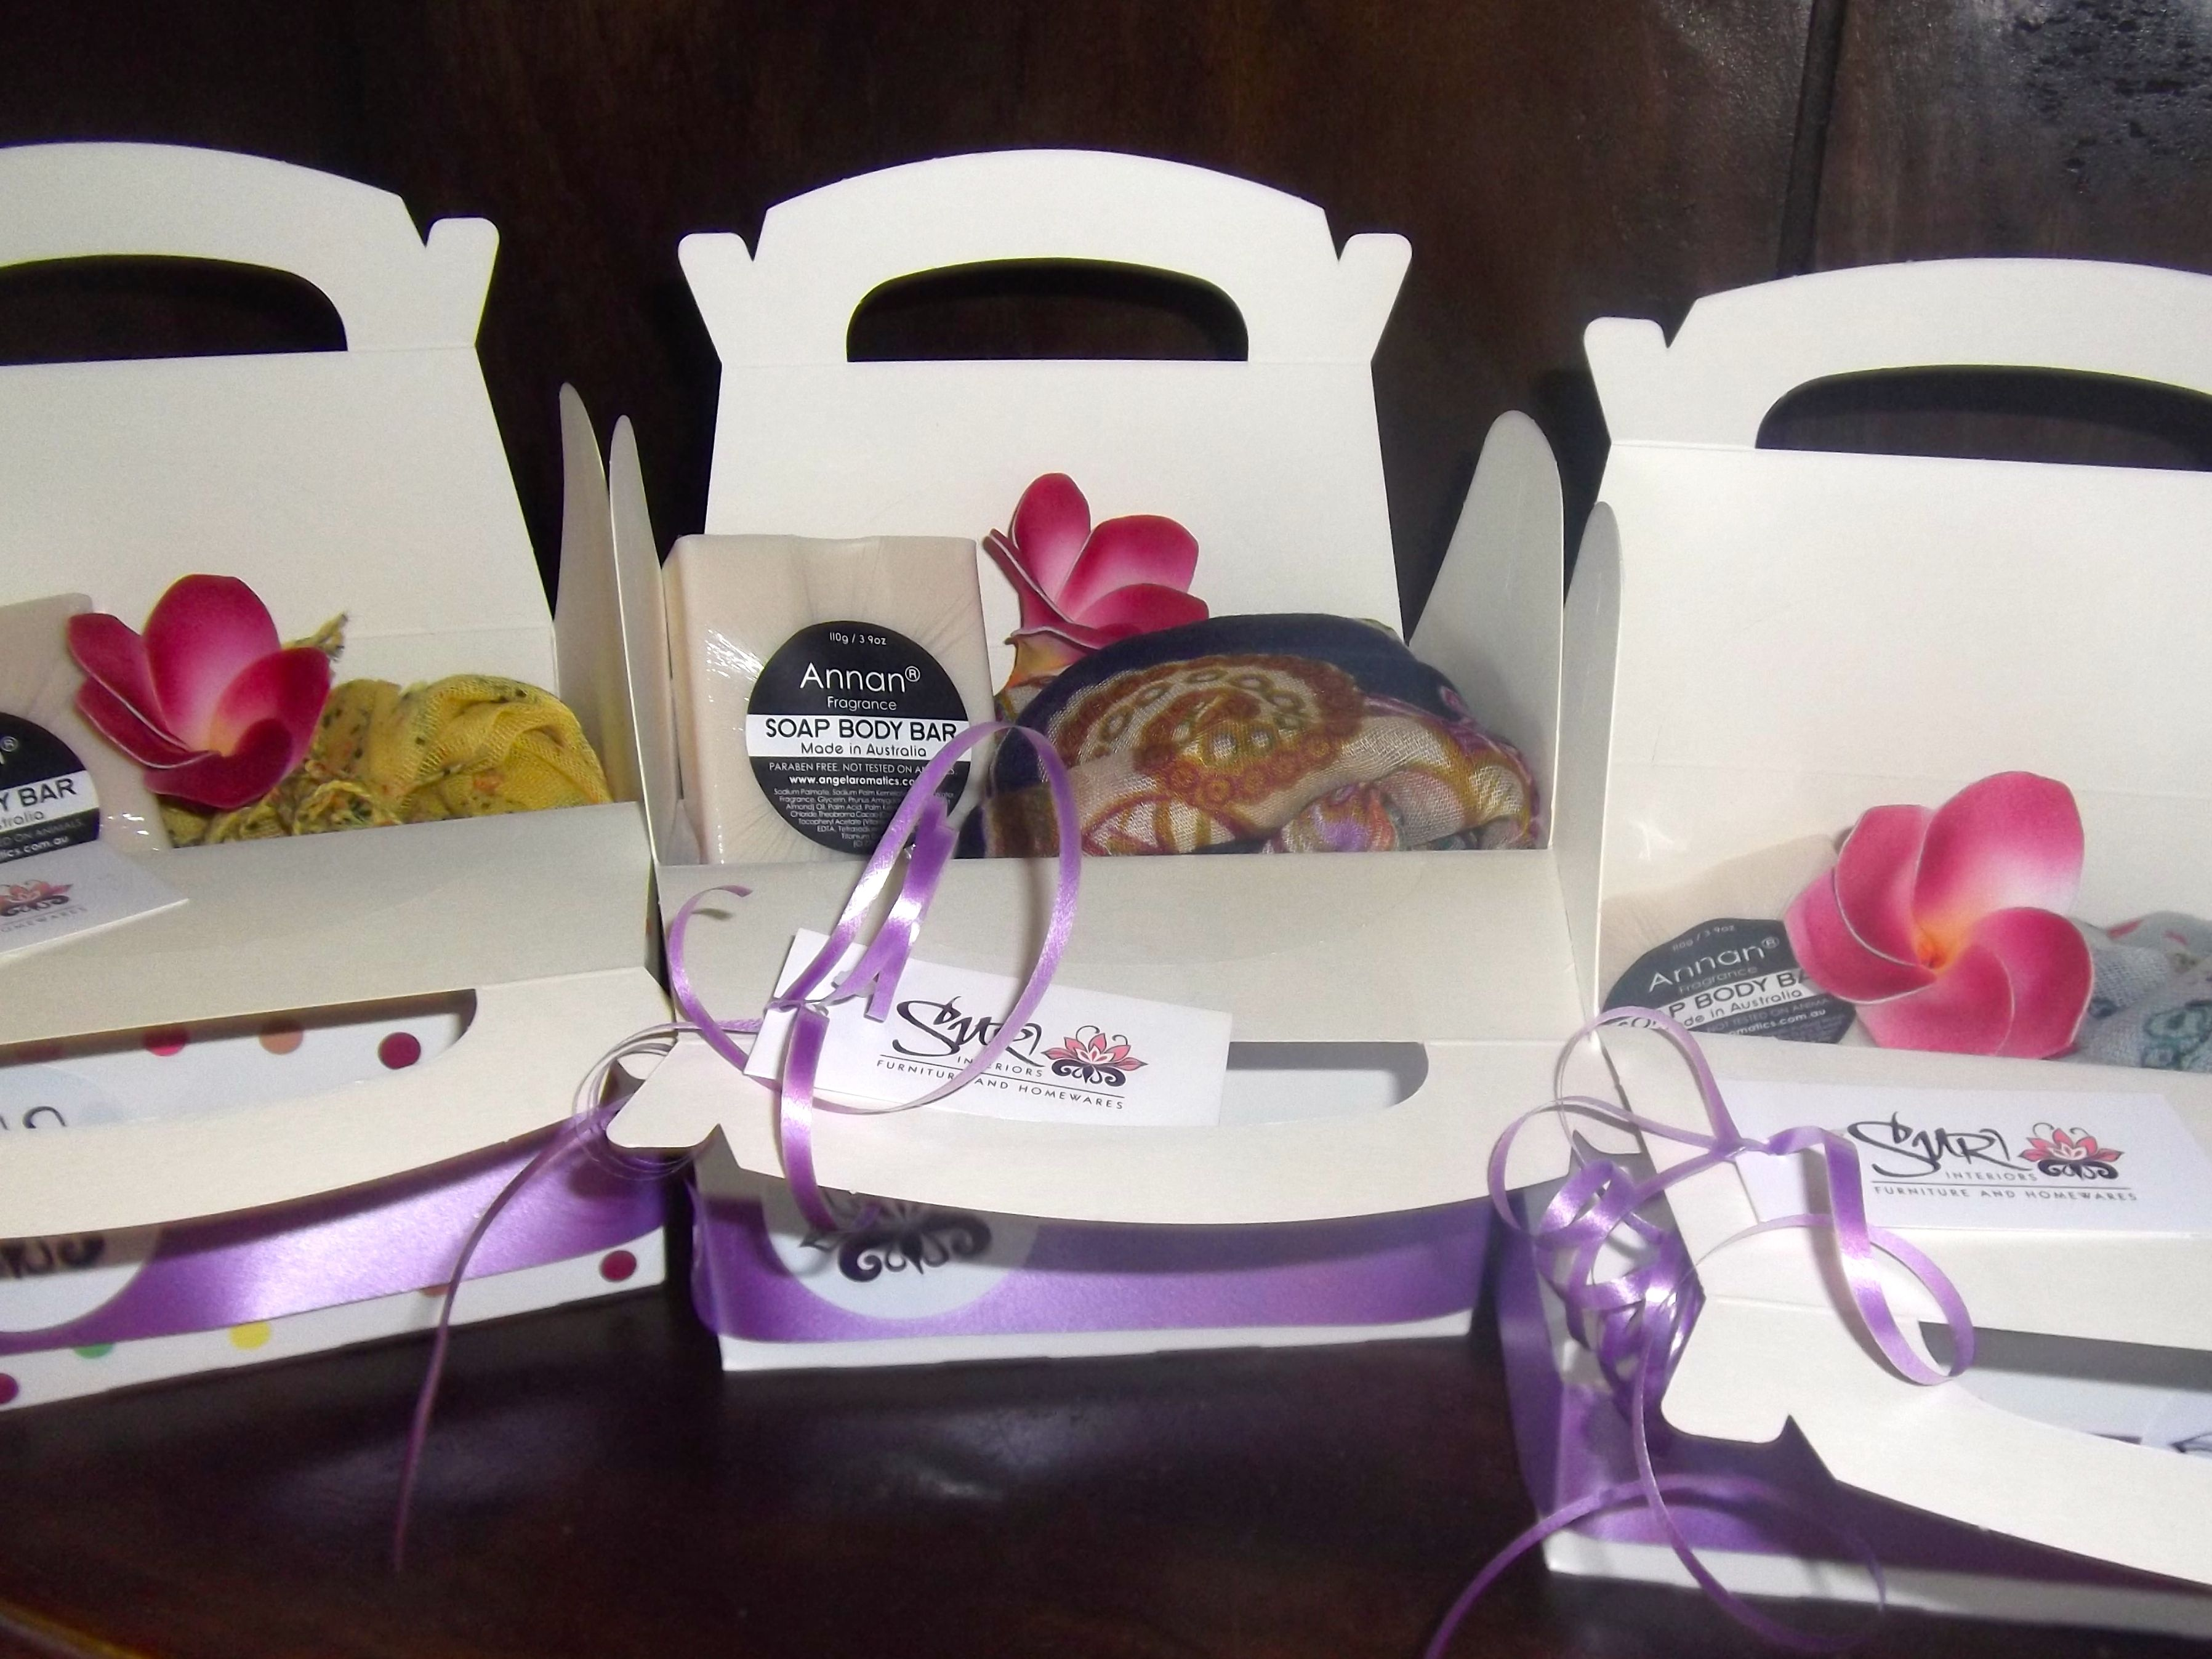 Spoil mum this Mothers Day with one of our gorgeous Suri Interiors Gift Packs. Priced from $11.95, it includes a scarf and soap.